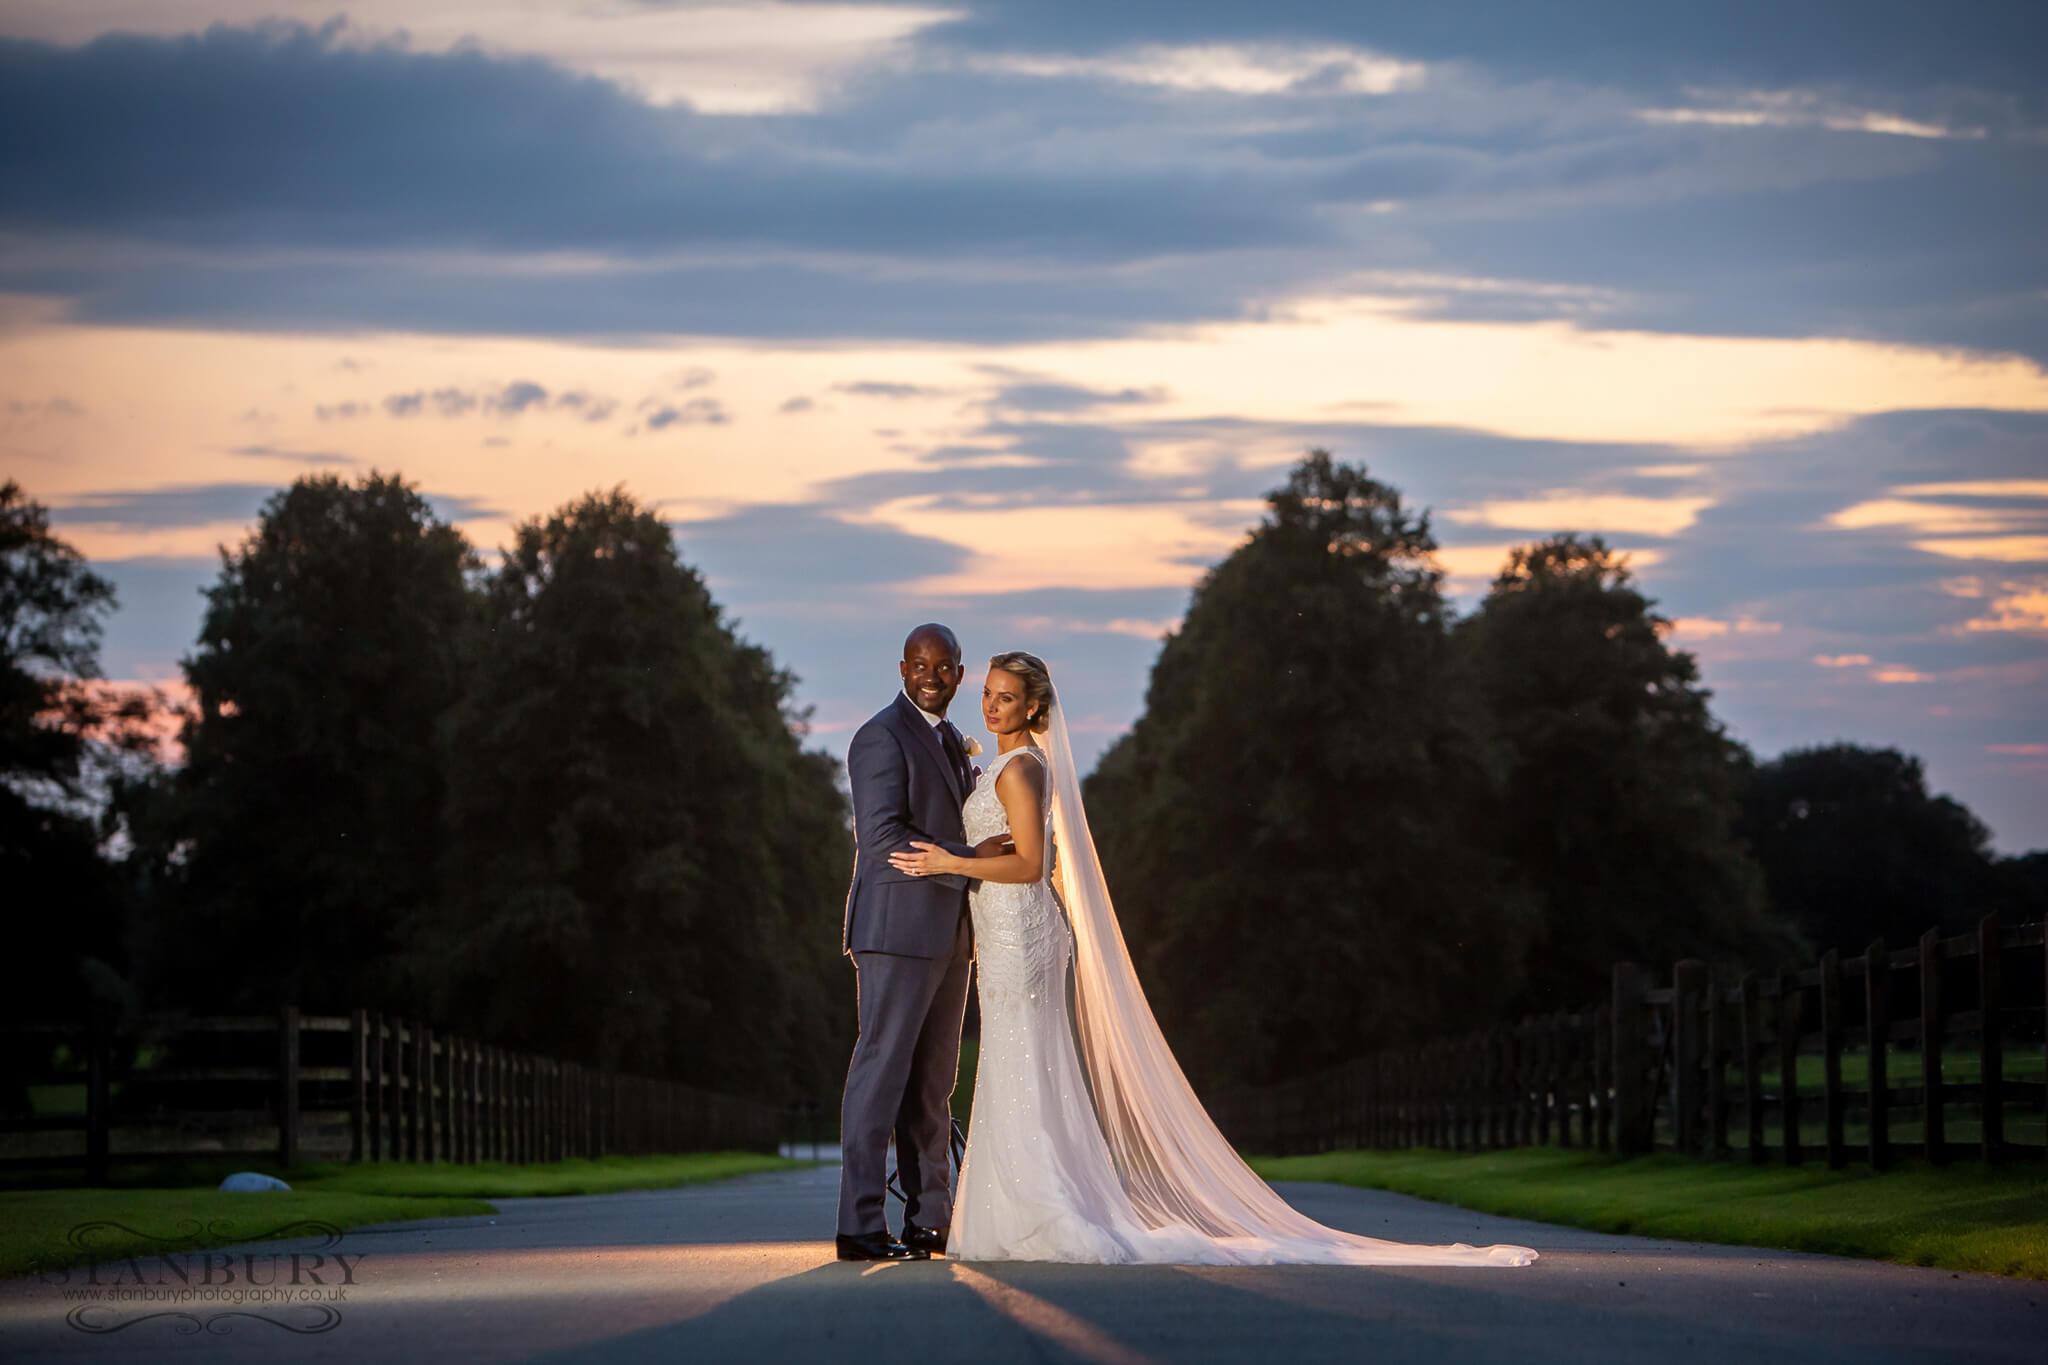 knowsley-hall-wedding-stanbury-photography-033